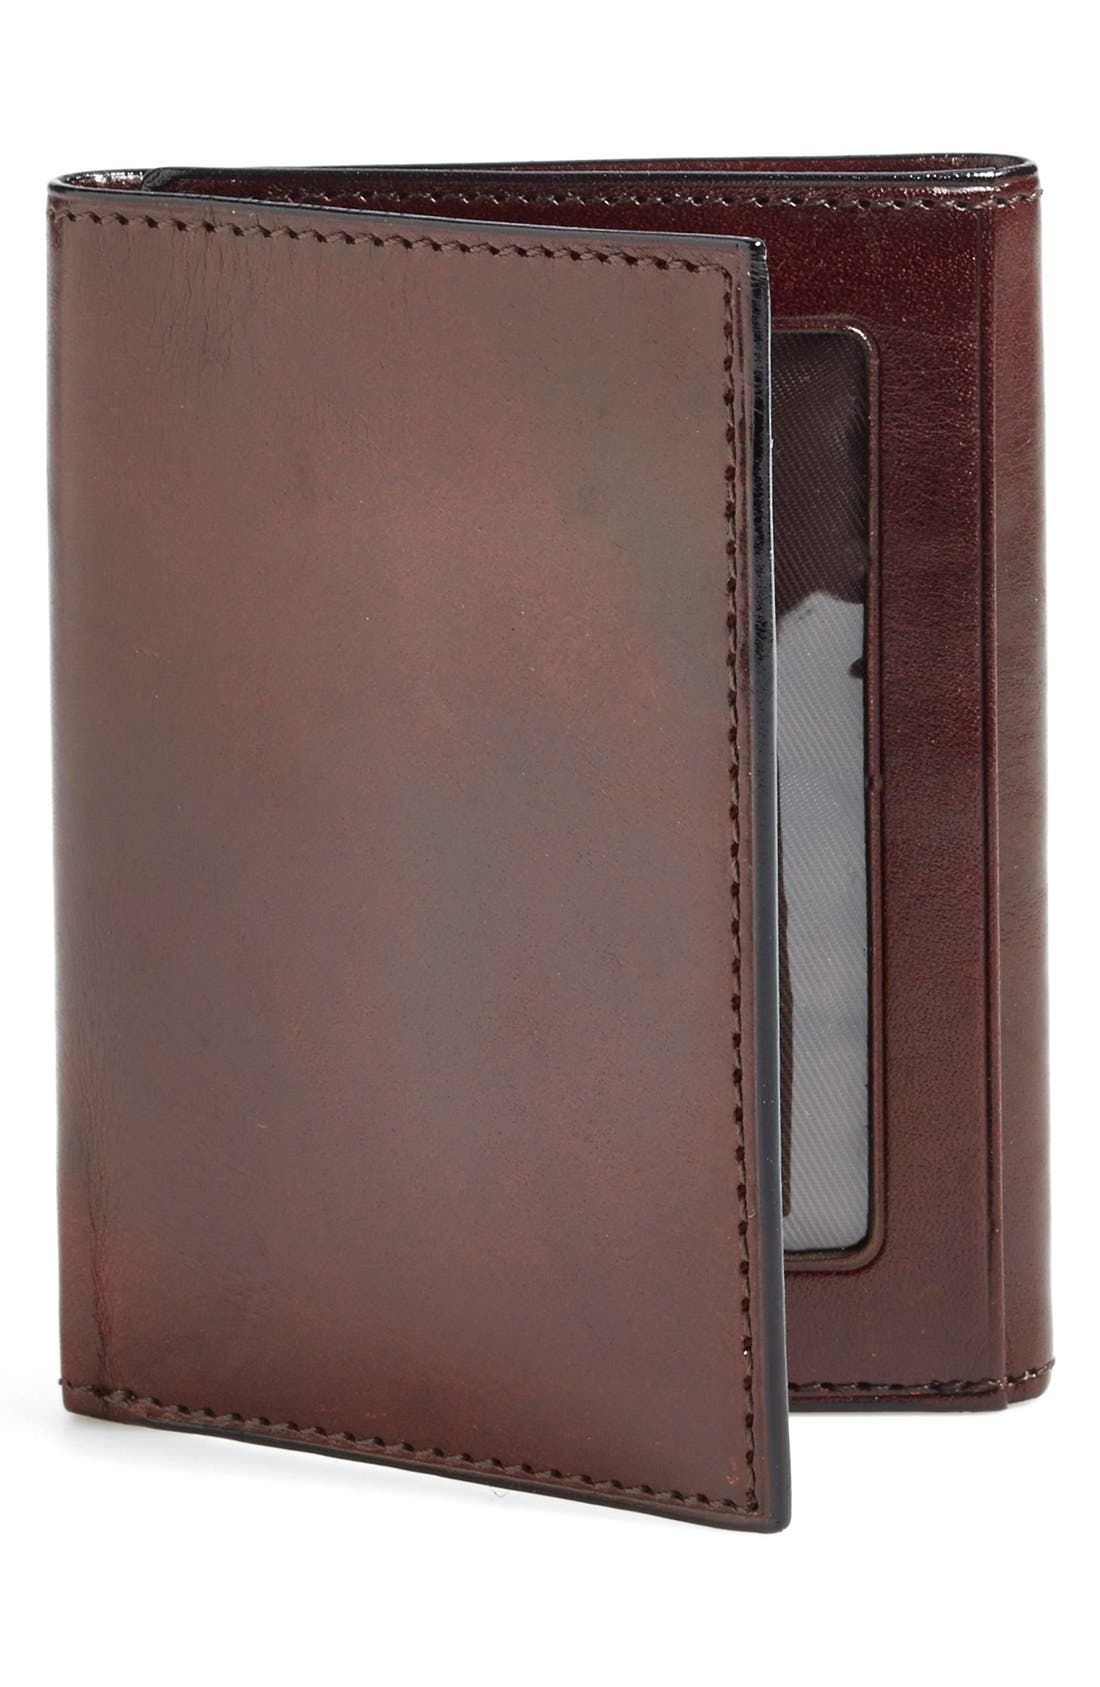 BOSCA Old Leather Trifold Wallet